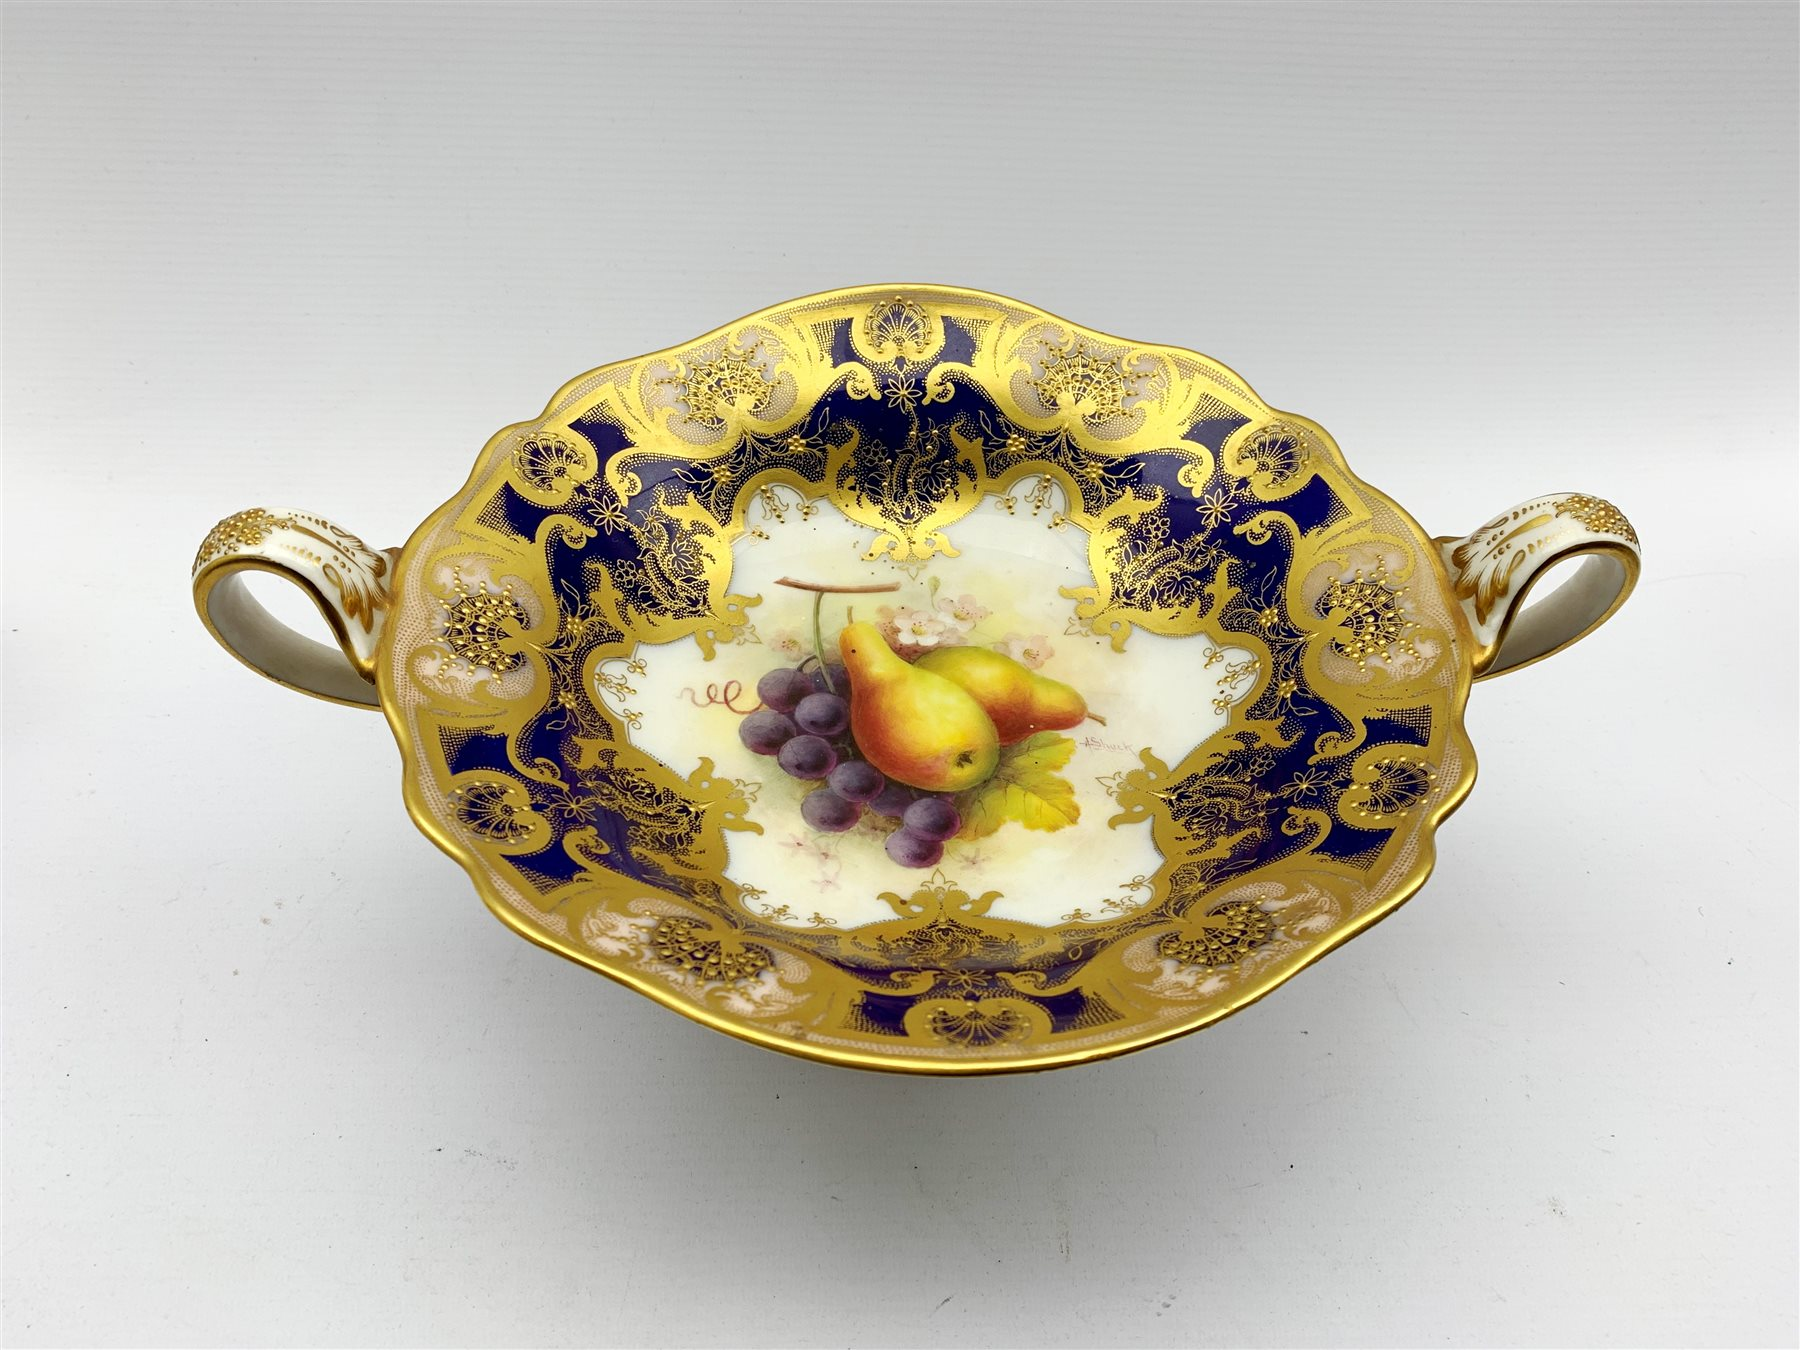 Royal Worcester porcelain twin-handled comport painted by Albert Shuck, signed, with grapes and pear - Image 3 of 7